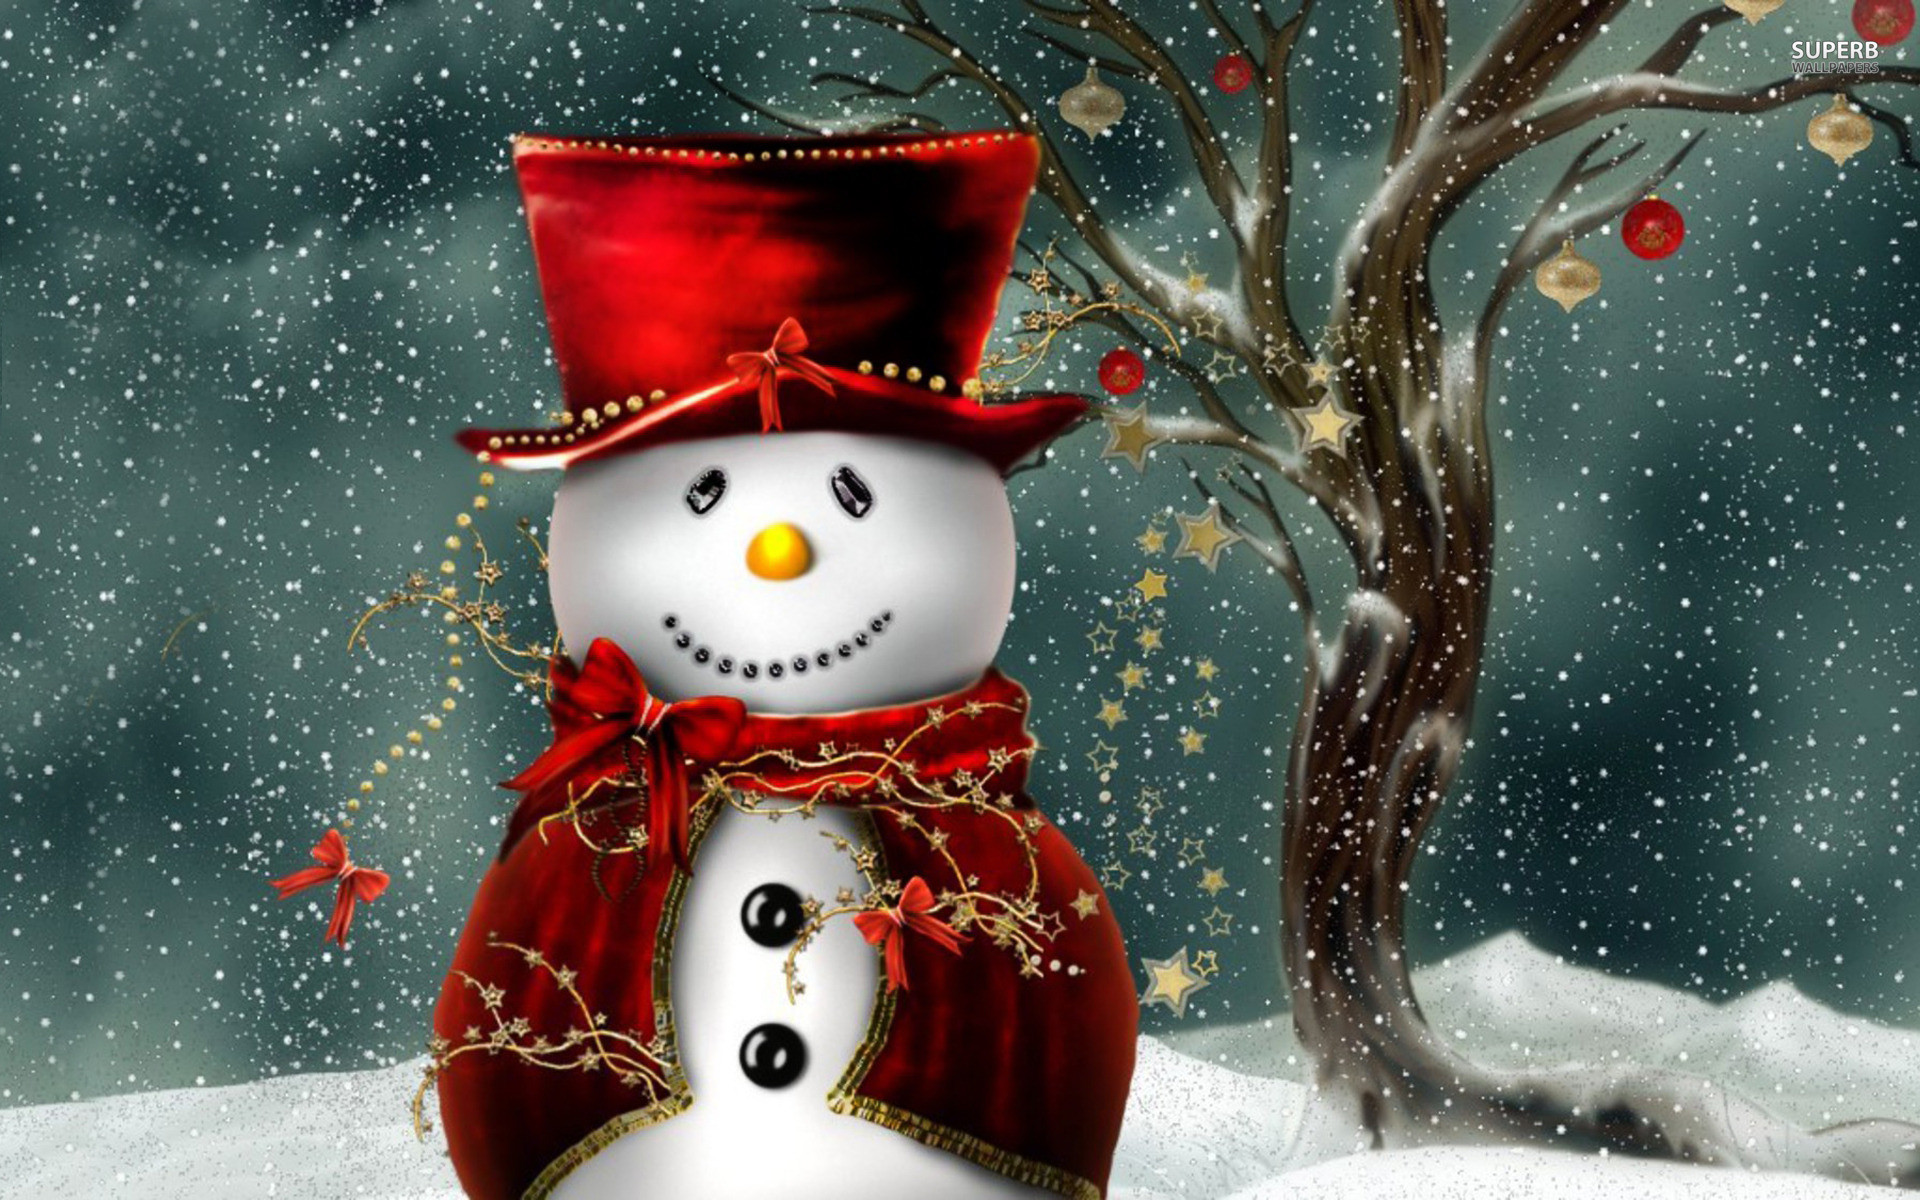 Frosty The Snowman Wallpaper 1